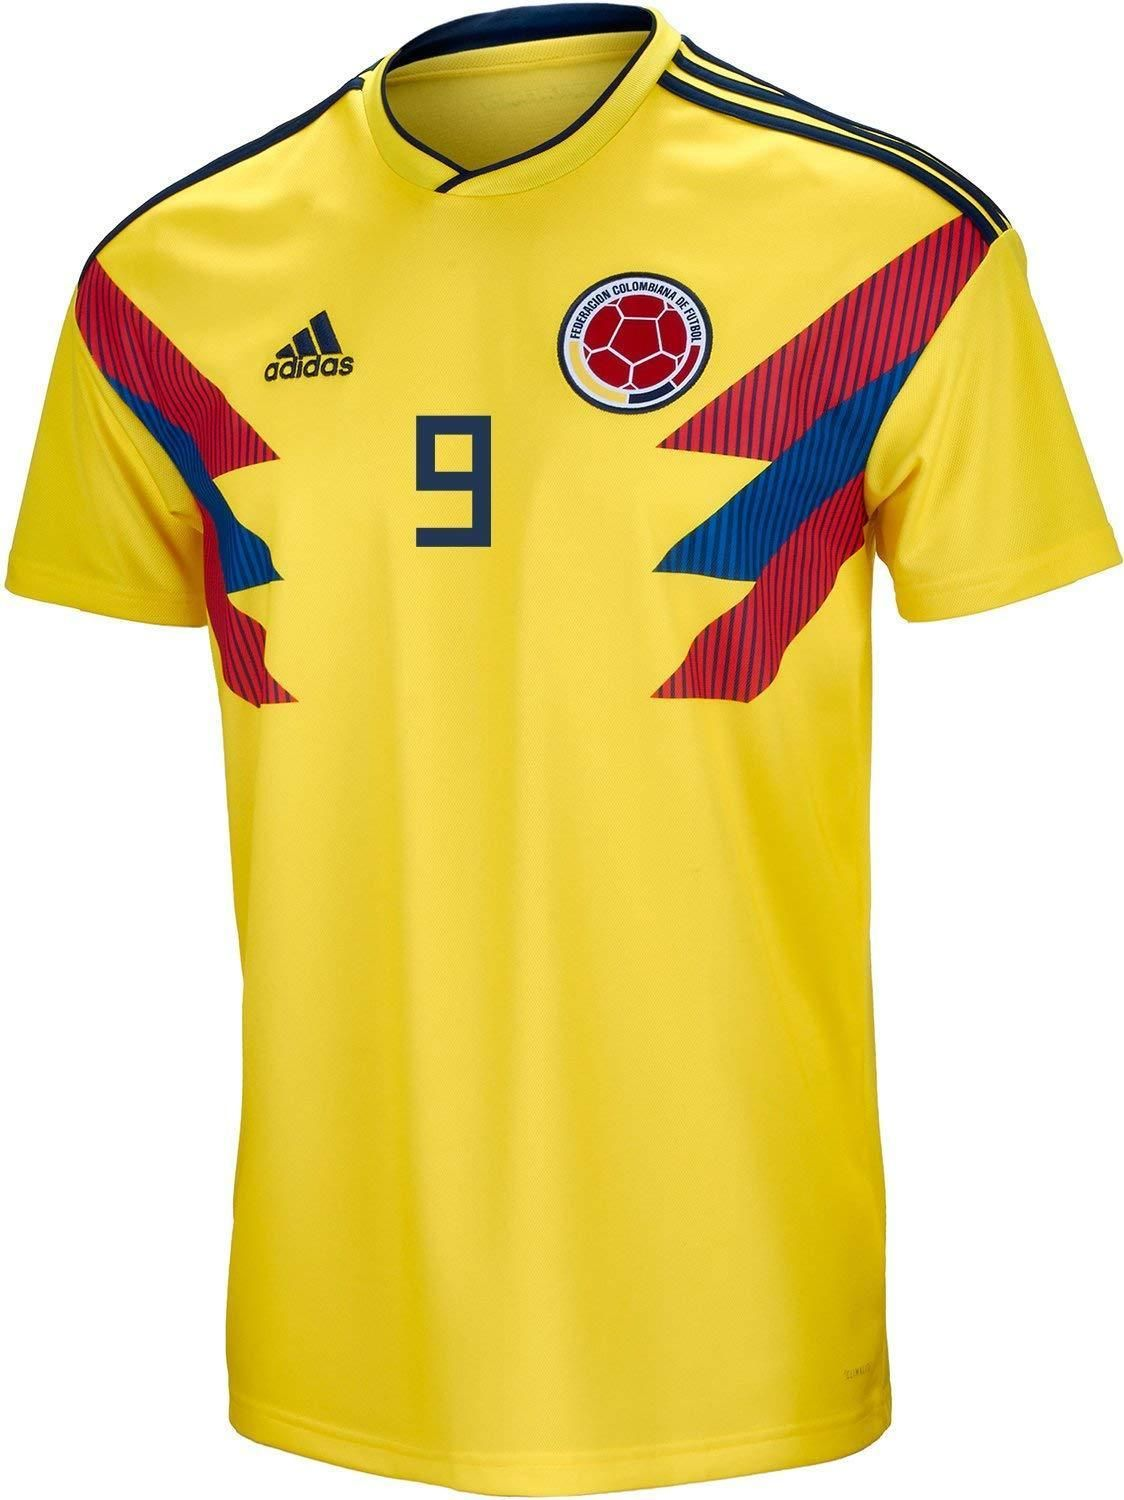 Adidas Falcao  9 Colombia Official Home Mens Soccer Jersey World Cup 2018  Small Discount Price 99.99 Free Shipping Buy it Now 2569707d4